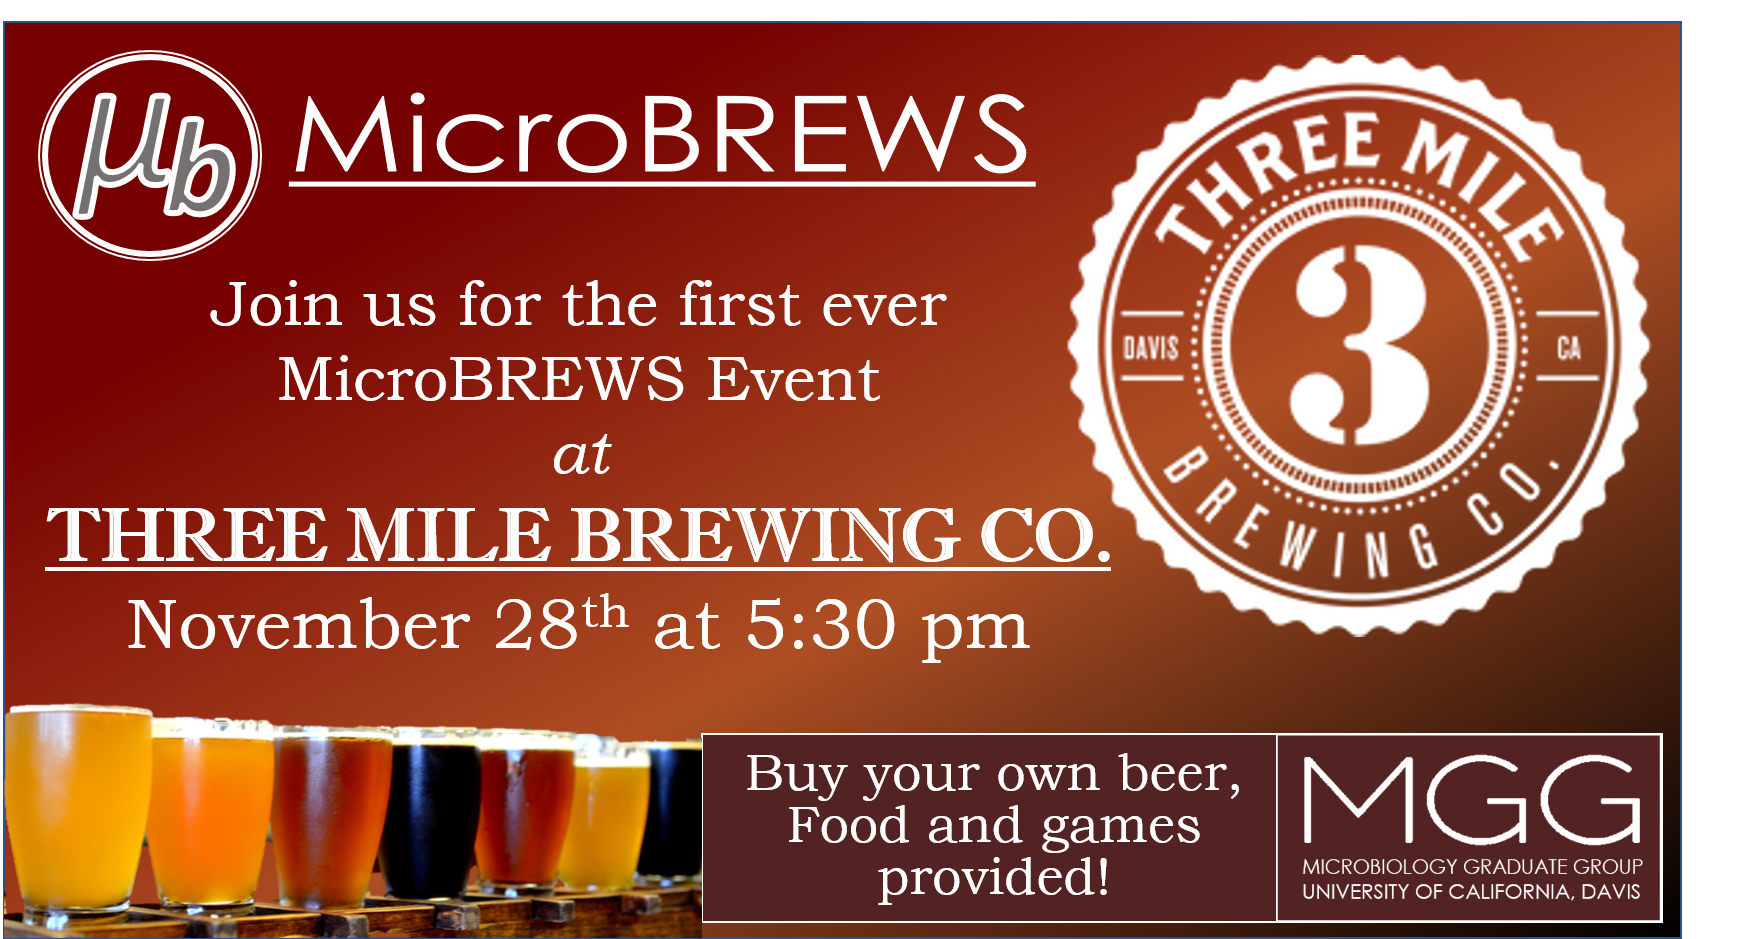 MicroBrews networking event